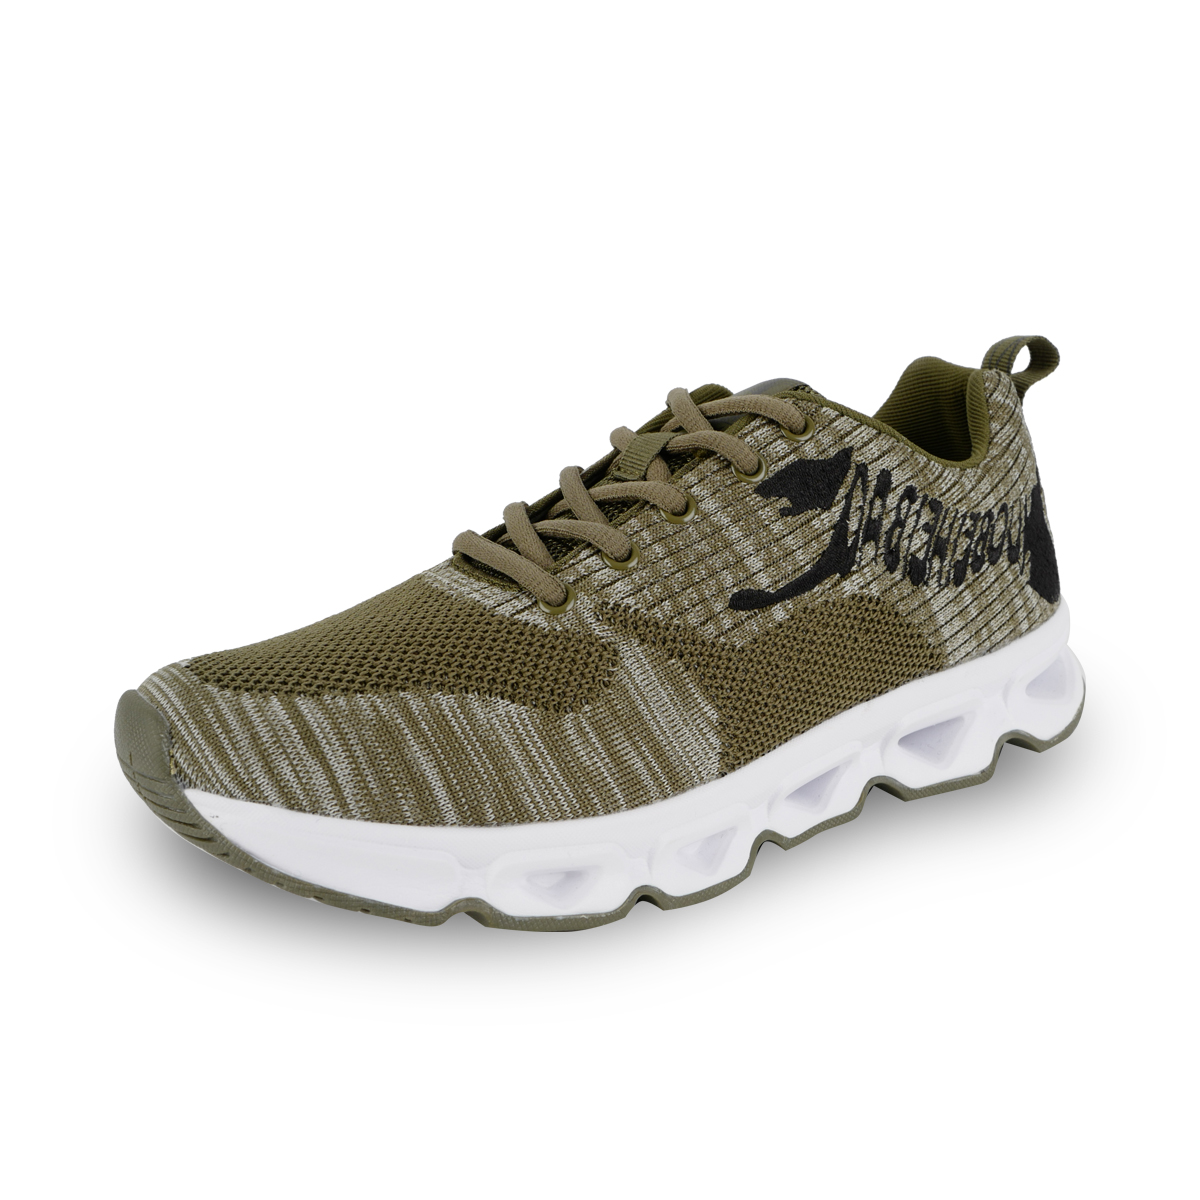 comfort Camouflage men Shoes running Sports Baolite 2 color TqxagwEP